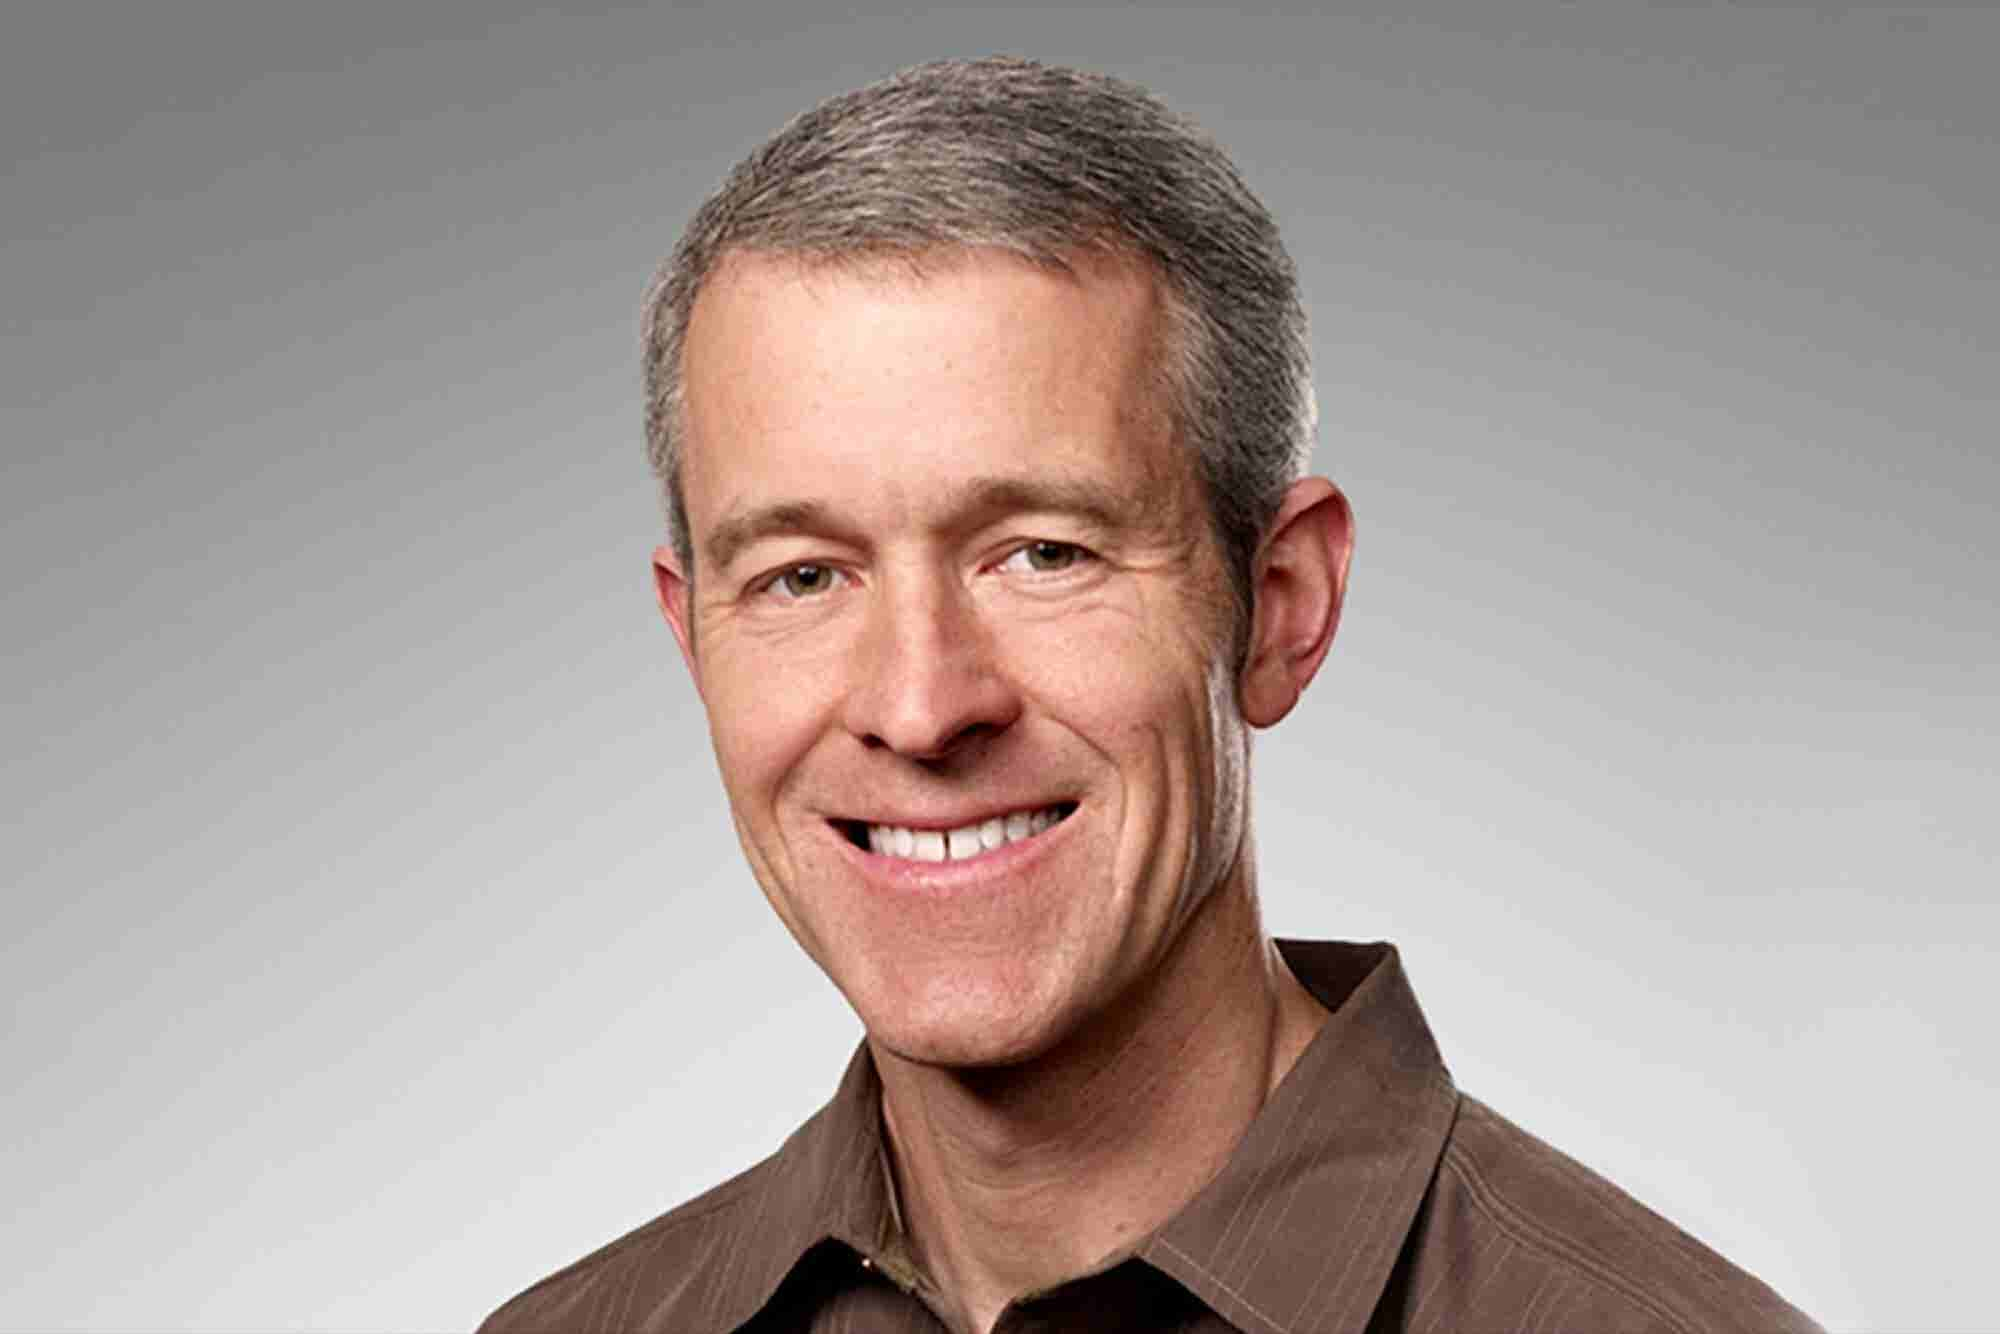 Apple Appoints New Chief Operating Officer